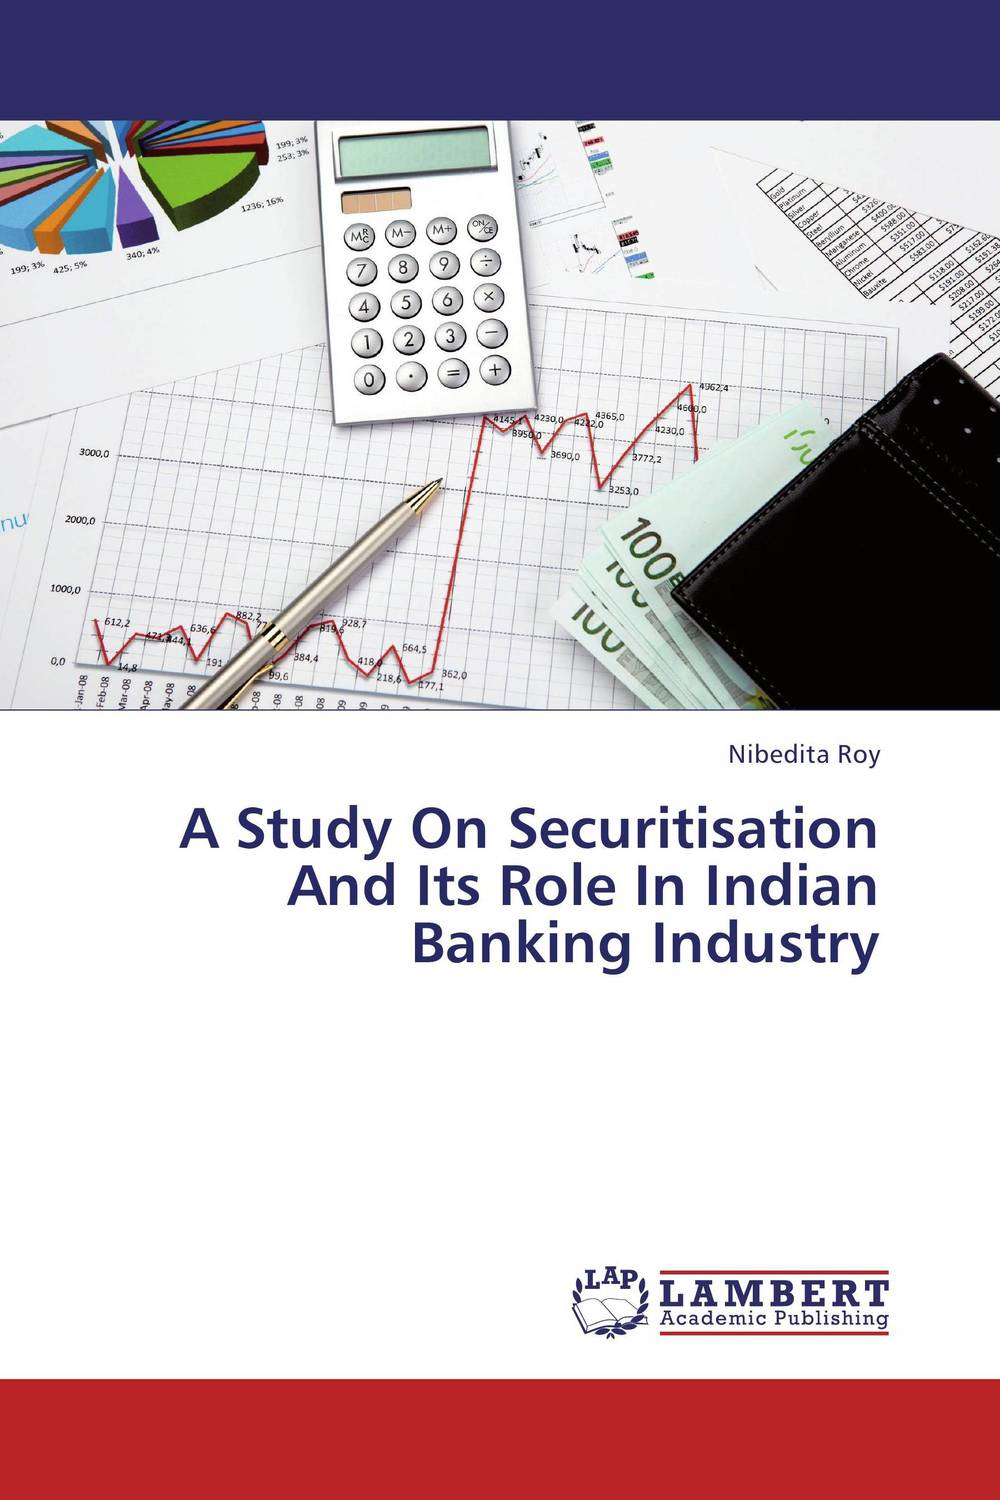 A Study On Securitisation And Its Role In Indian Banking Industry